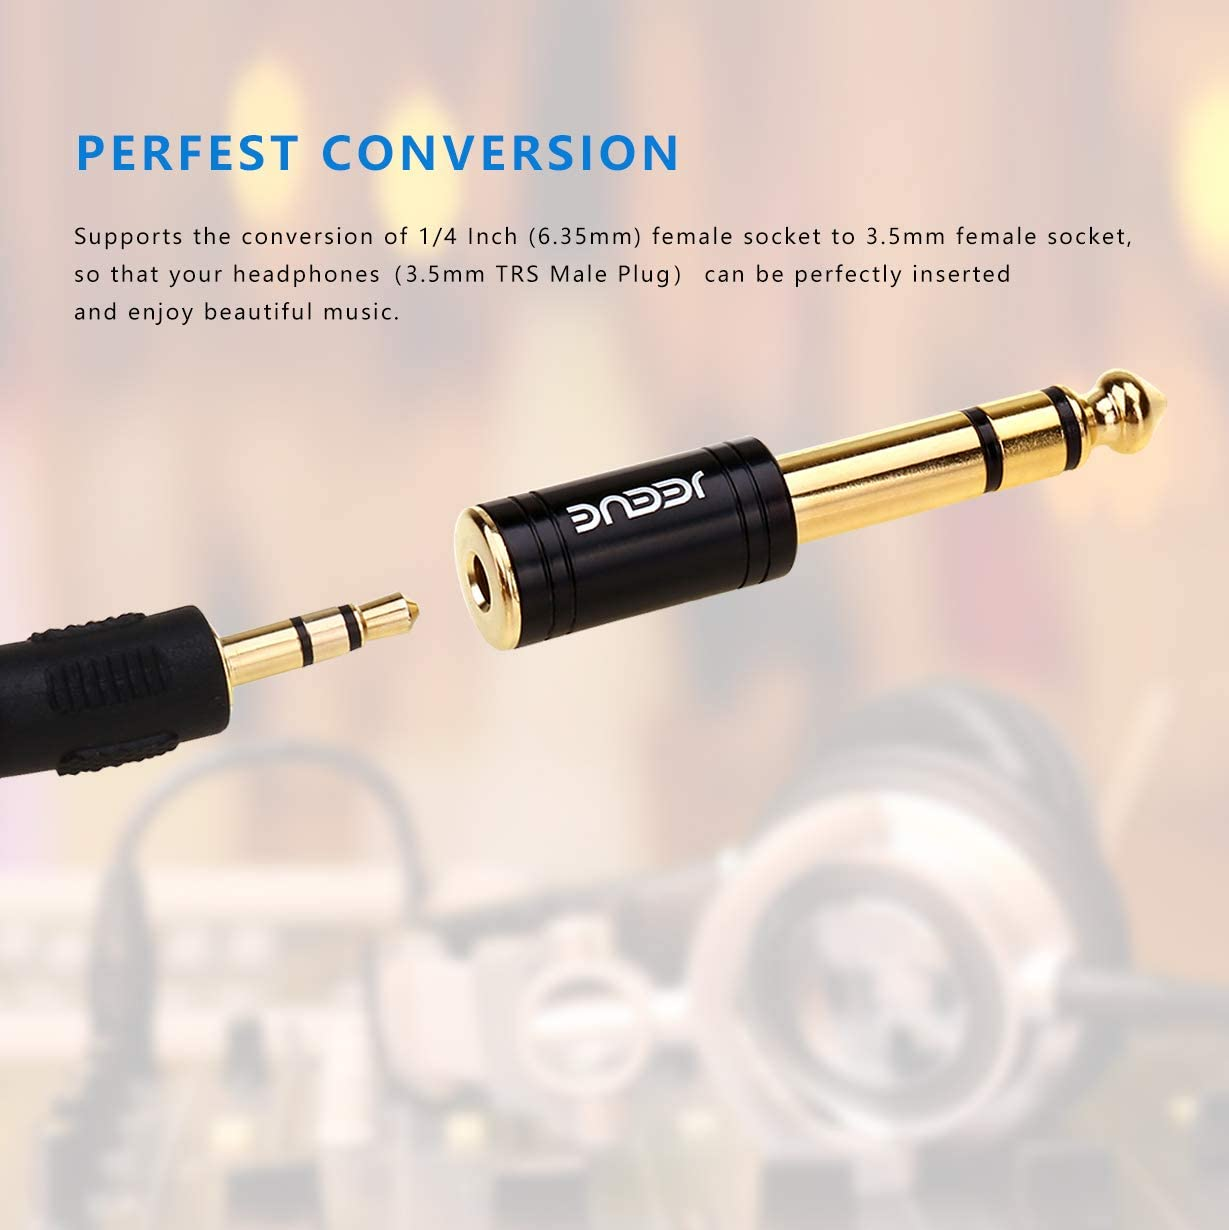 Gold 3.5mm TRS to 6.35mm Stereo Pure Copper Jack Adaptor Bring You Professional Sound JEEUE 6.35mm to 3.5mm Headphones Adapter for Audio Connector Cables 1+1 2PCS